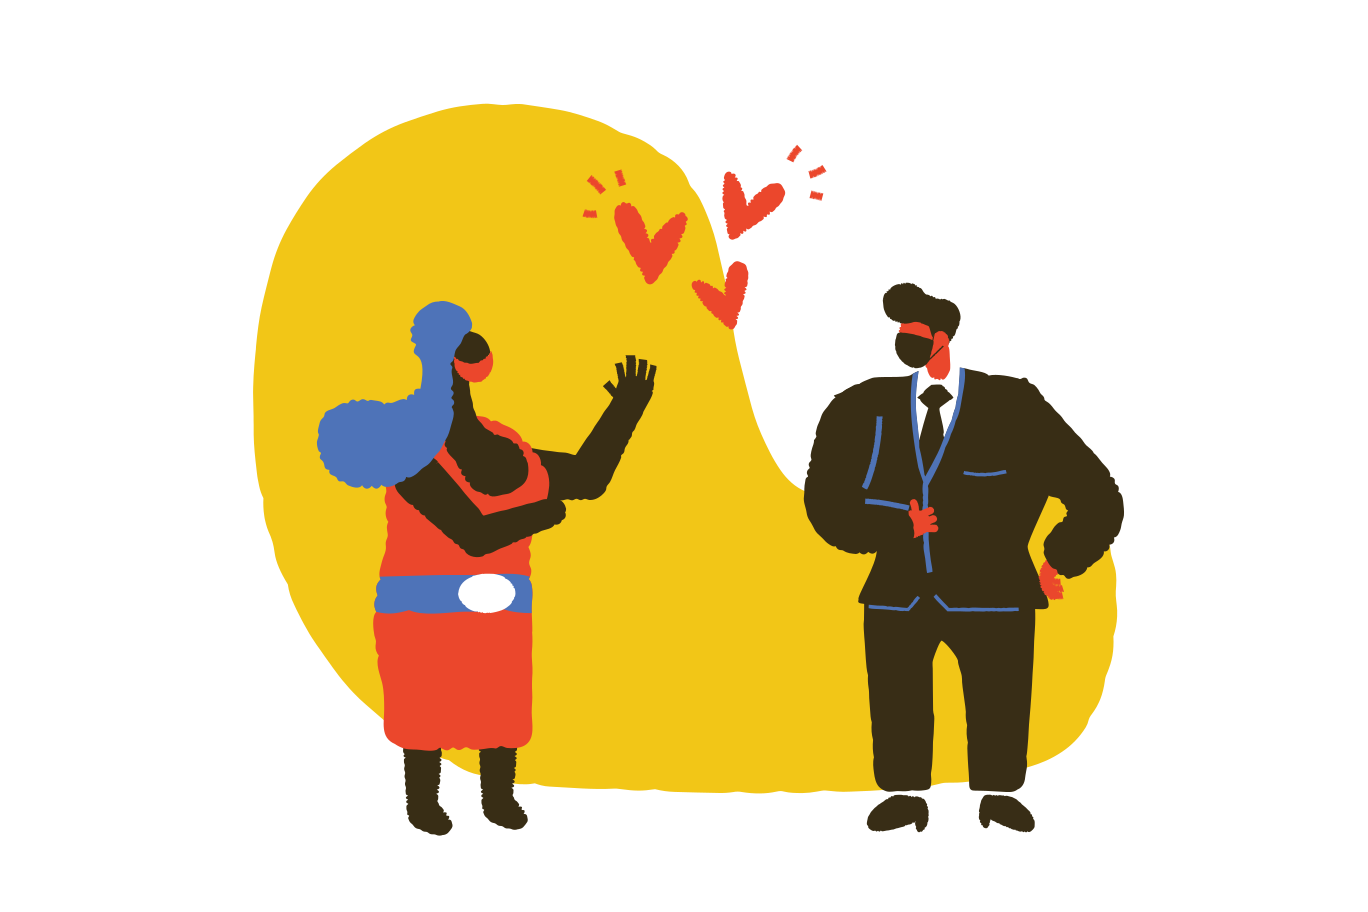 style Dating in masks Vector images in PNG and SVG | Icons8 Illustrations